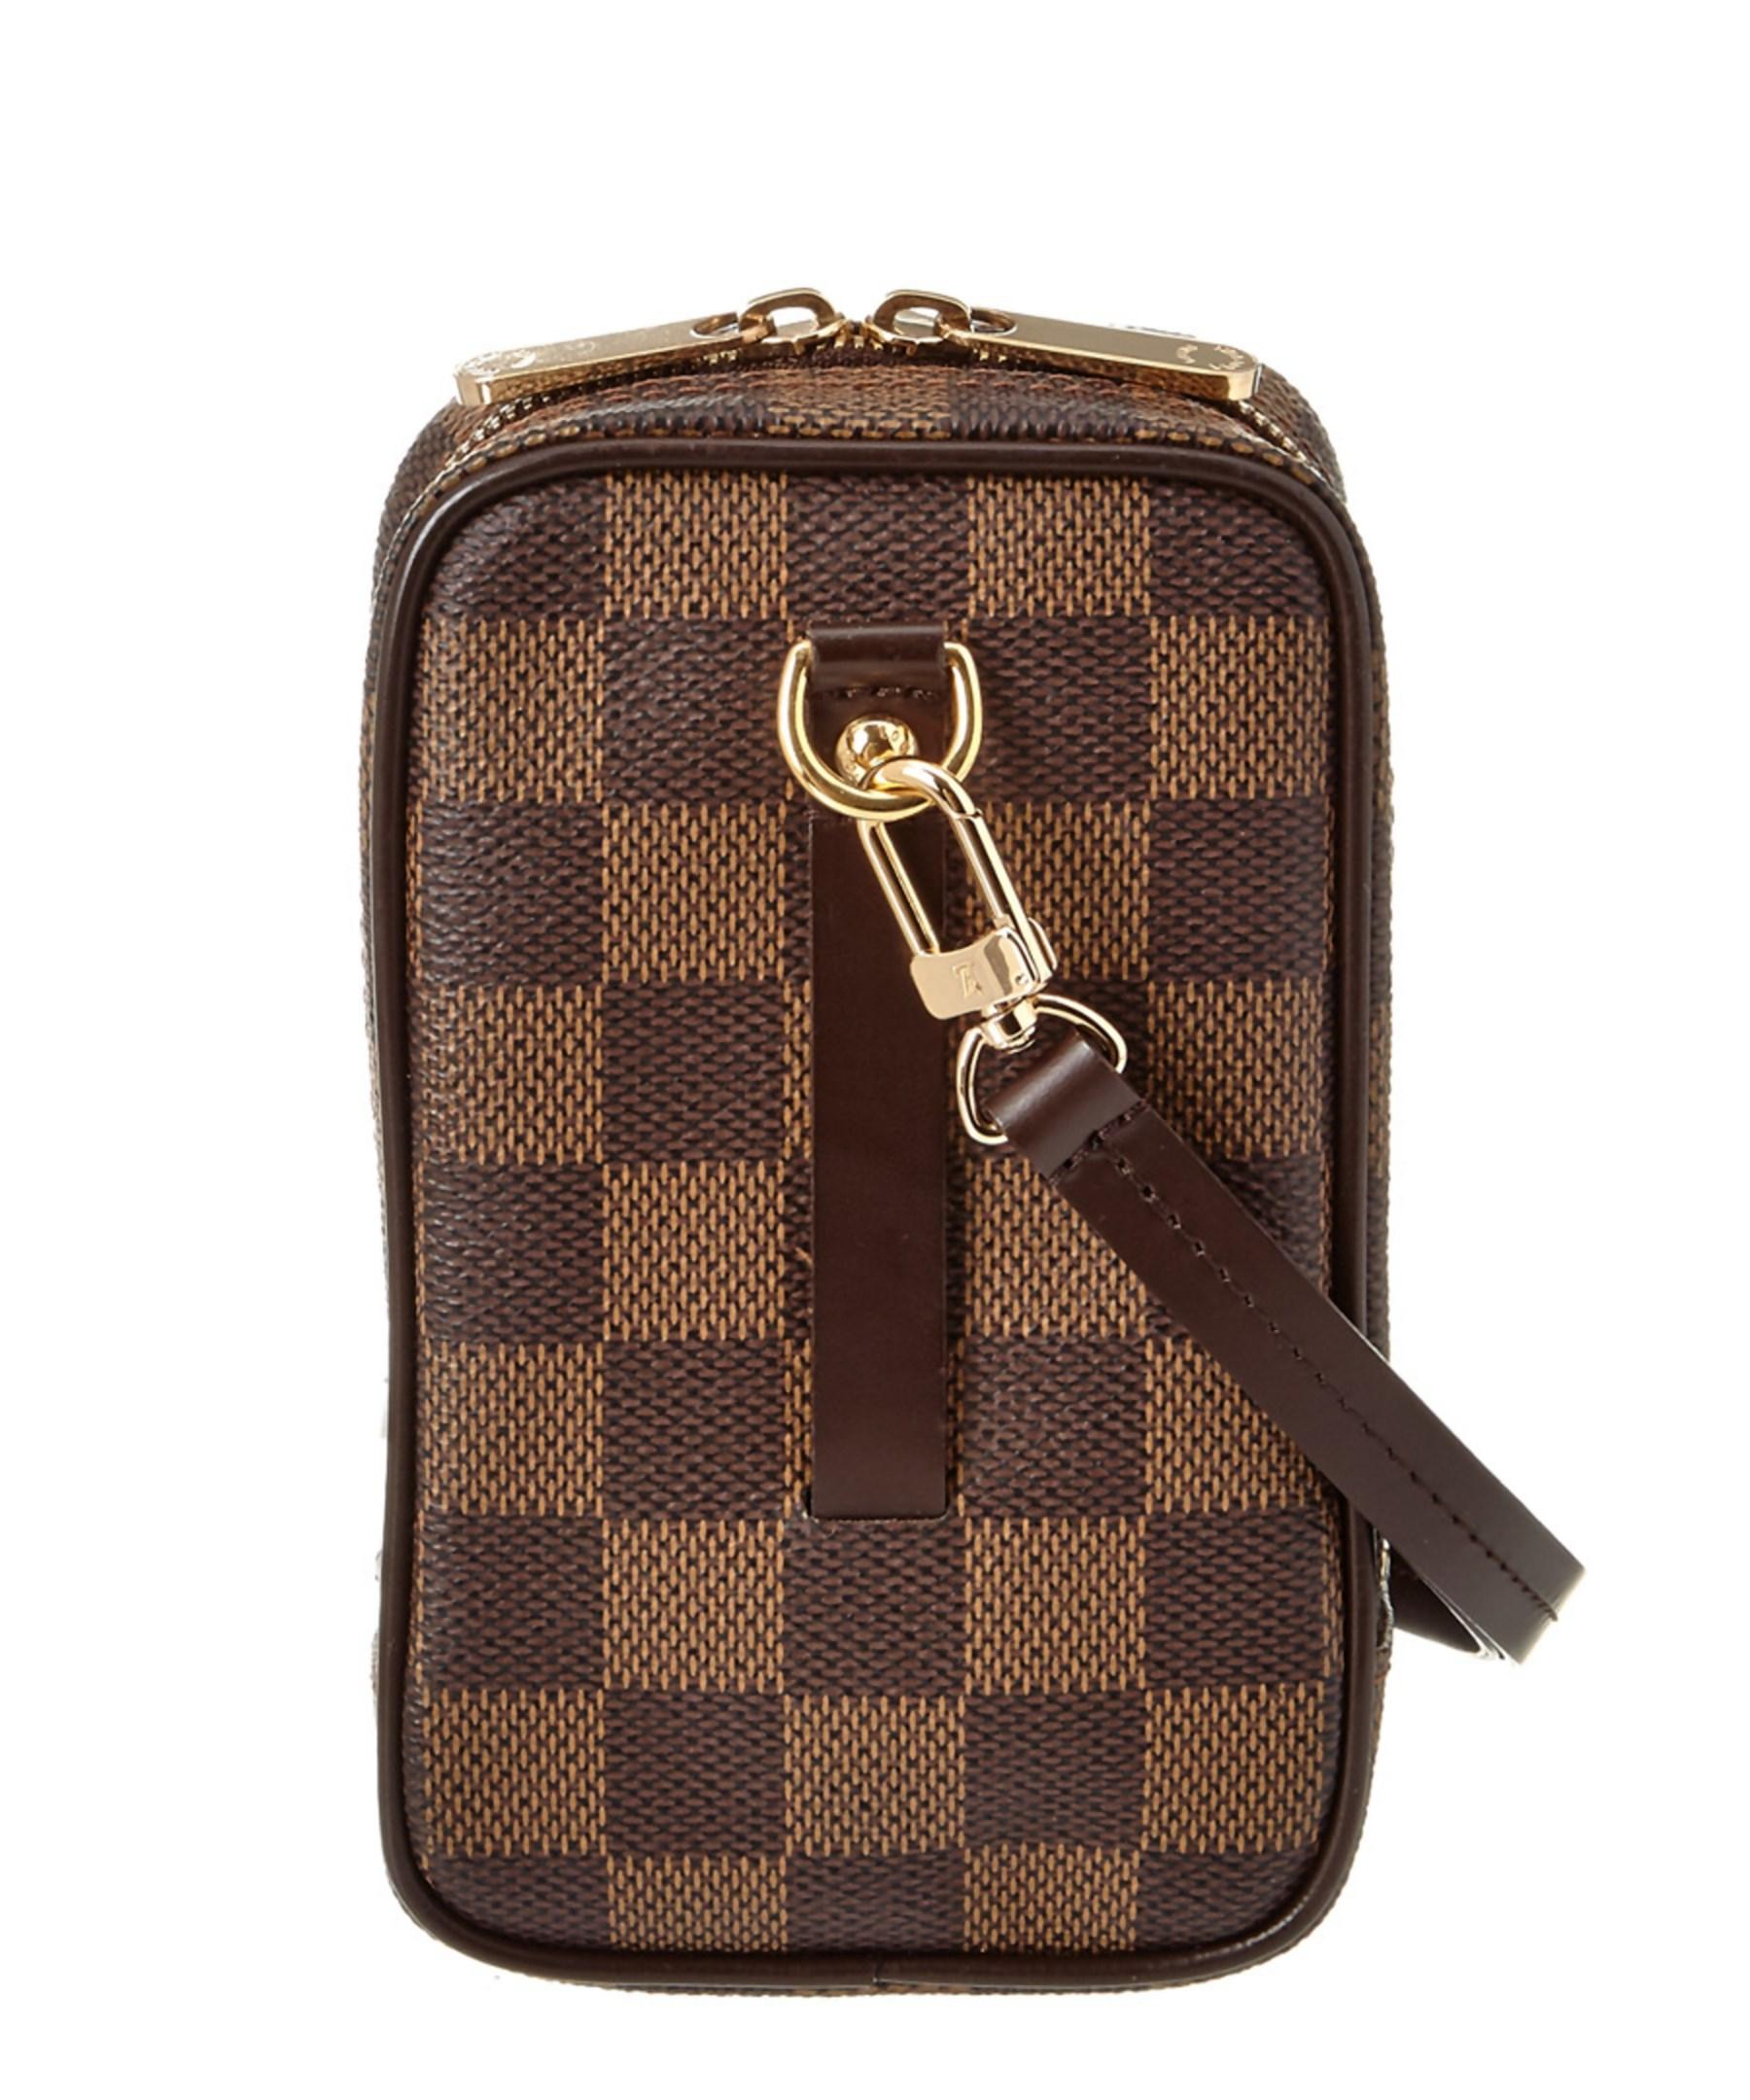 louis vuitton damier ebene canvas etui okapi pm in brown. Black Bedroom Furniture Sets. Home Design Ideas